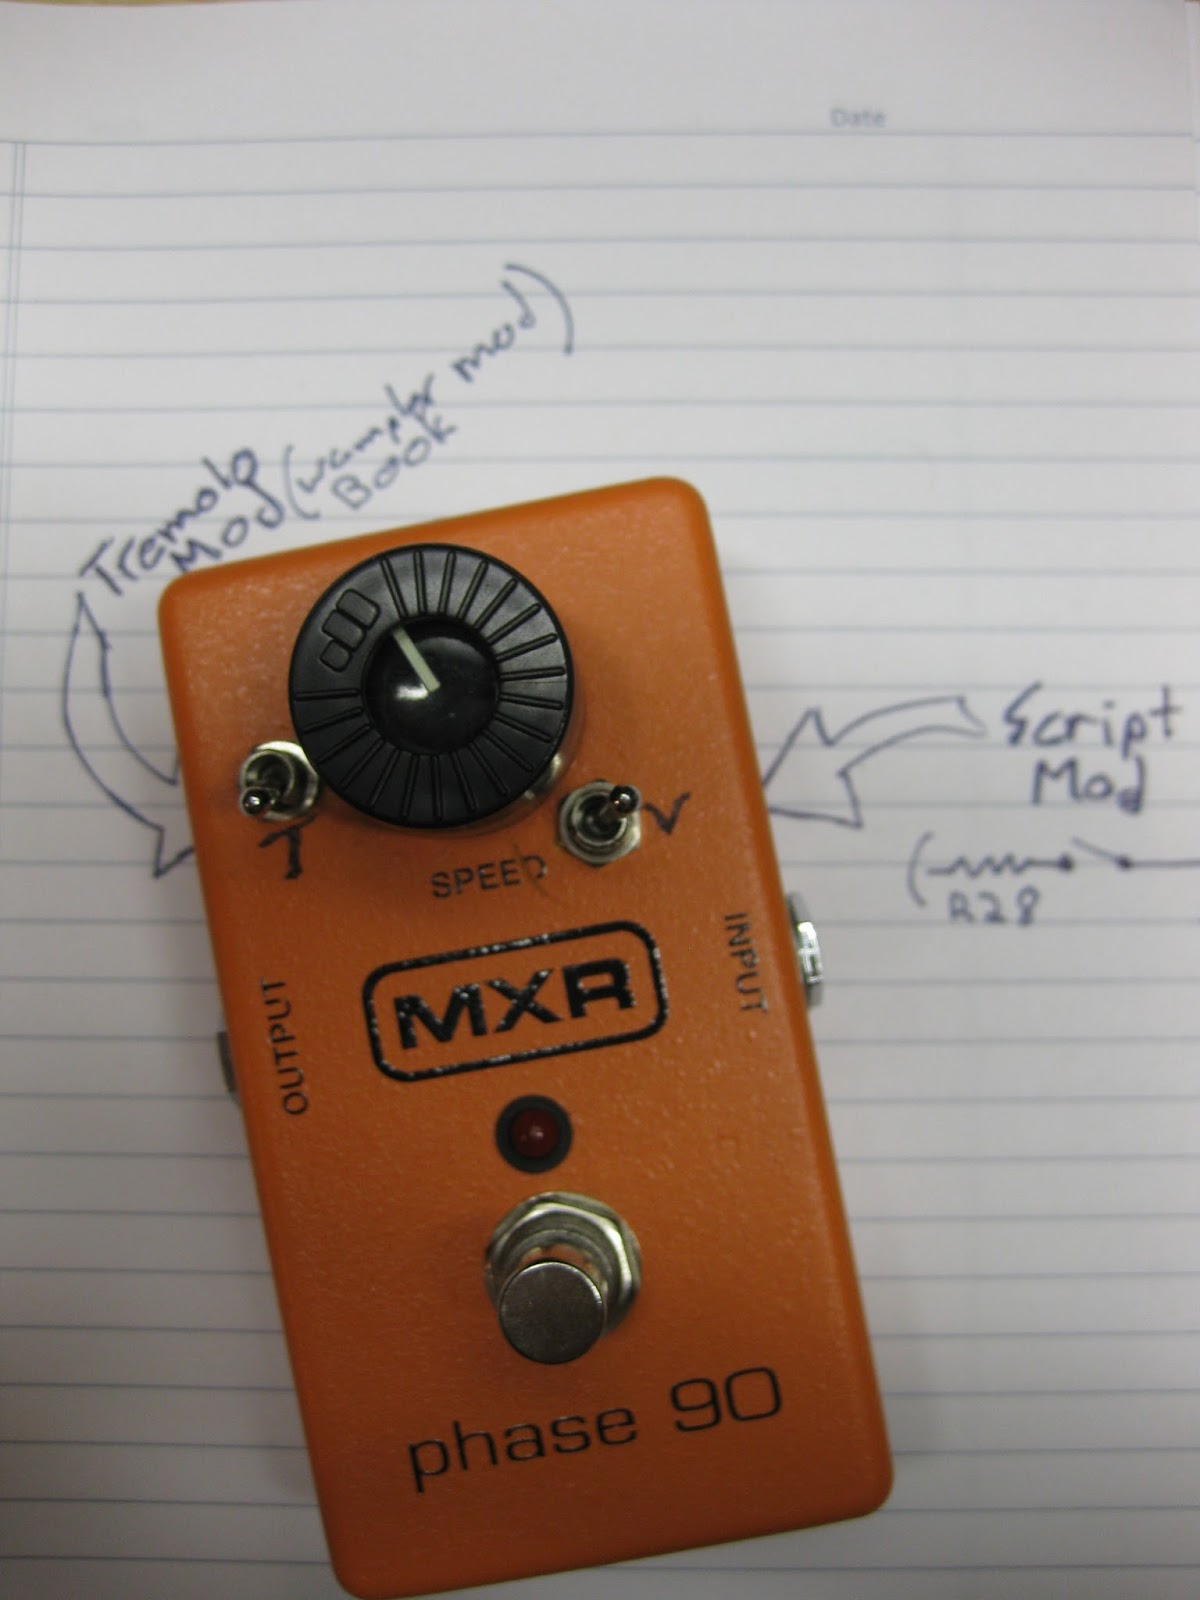 DIY Guitar pedal projects: Phase 90 mods